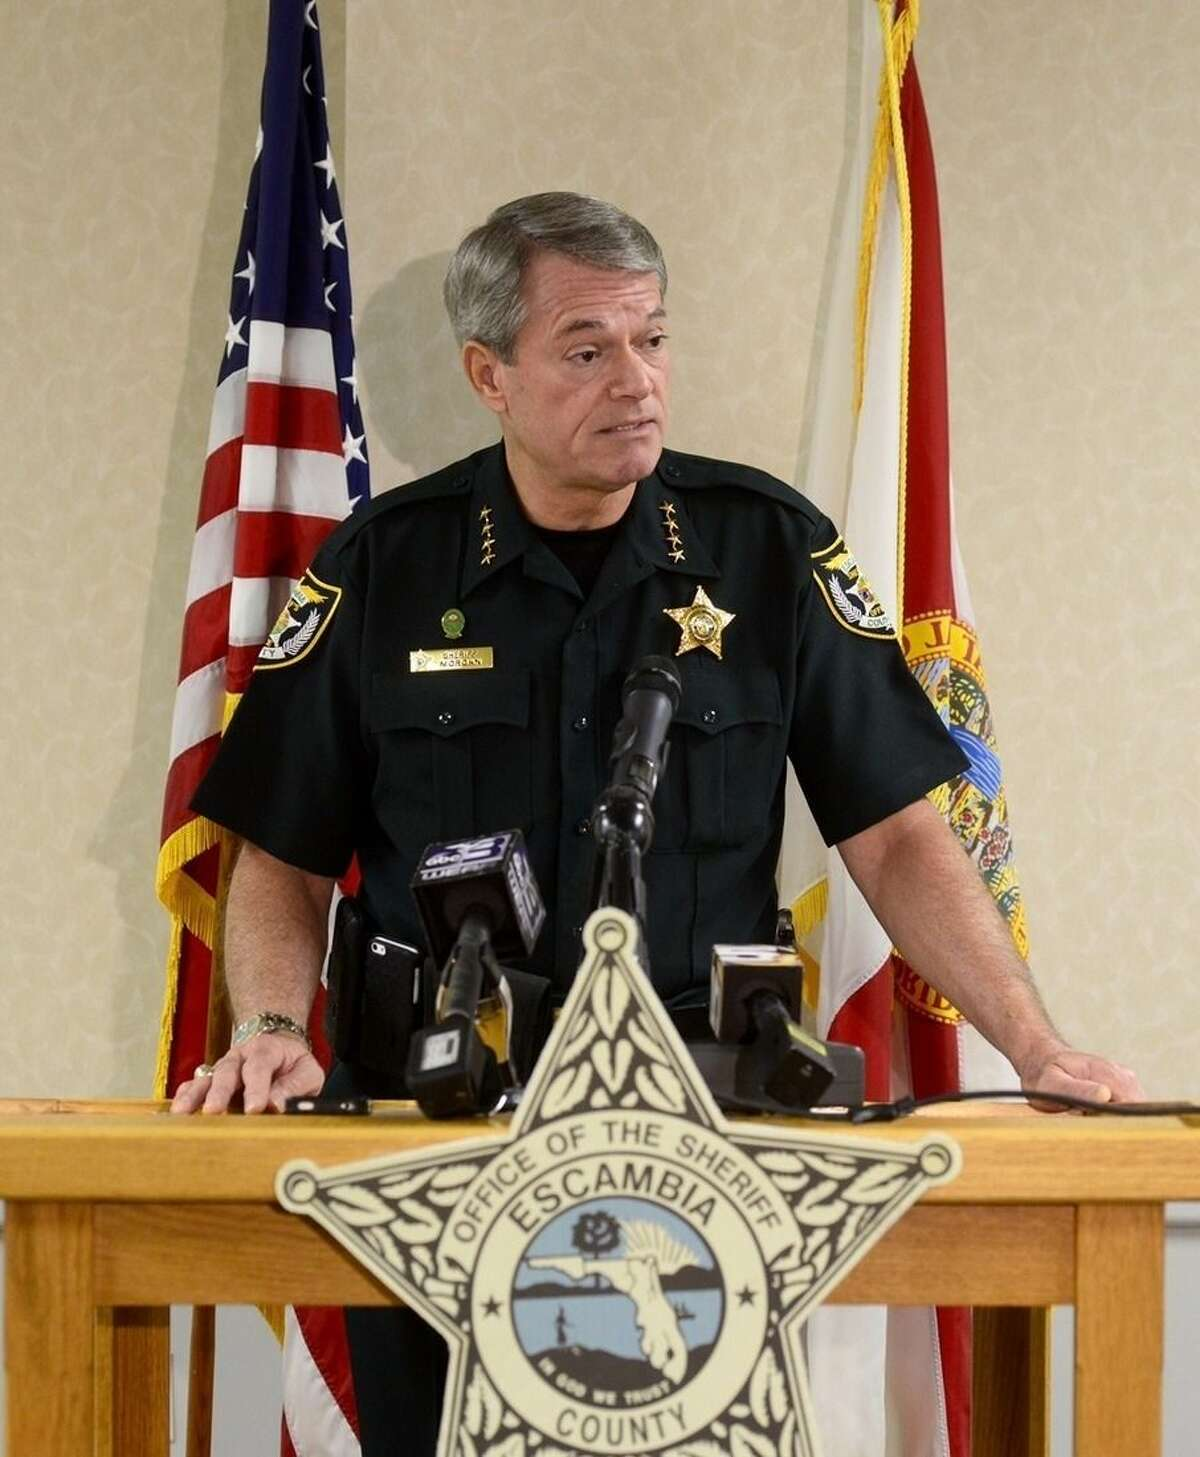 Escambia County Sheriff David Morgan speaks at a news conference in Pensacola, Fla., Tuesday, Aug. 4, 2015. Morgan said a triple homicide in Florida is being investigated as a possible ritualistic killing connected to the recent blue moon. (Ben Twingley, Pensacola News Journal via AP)